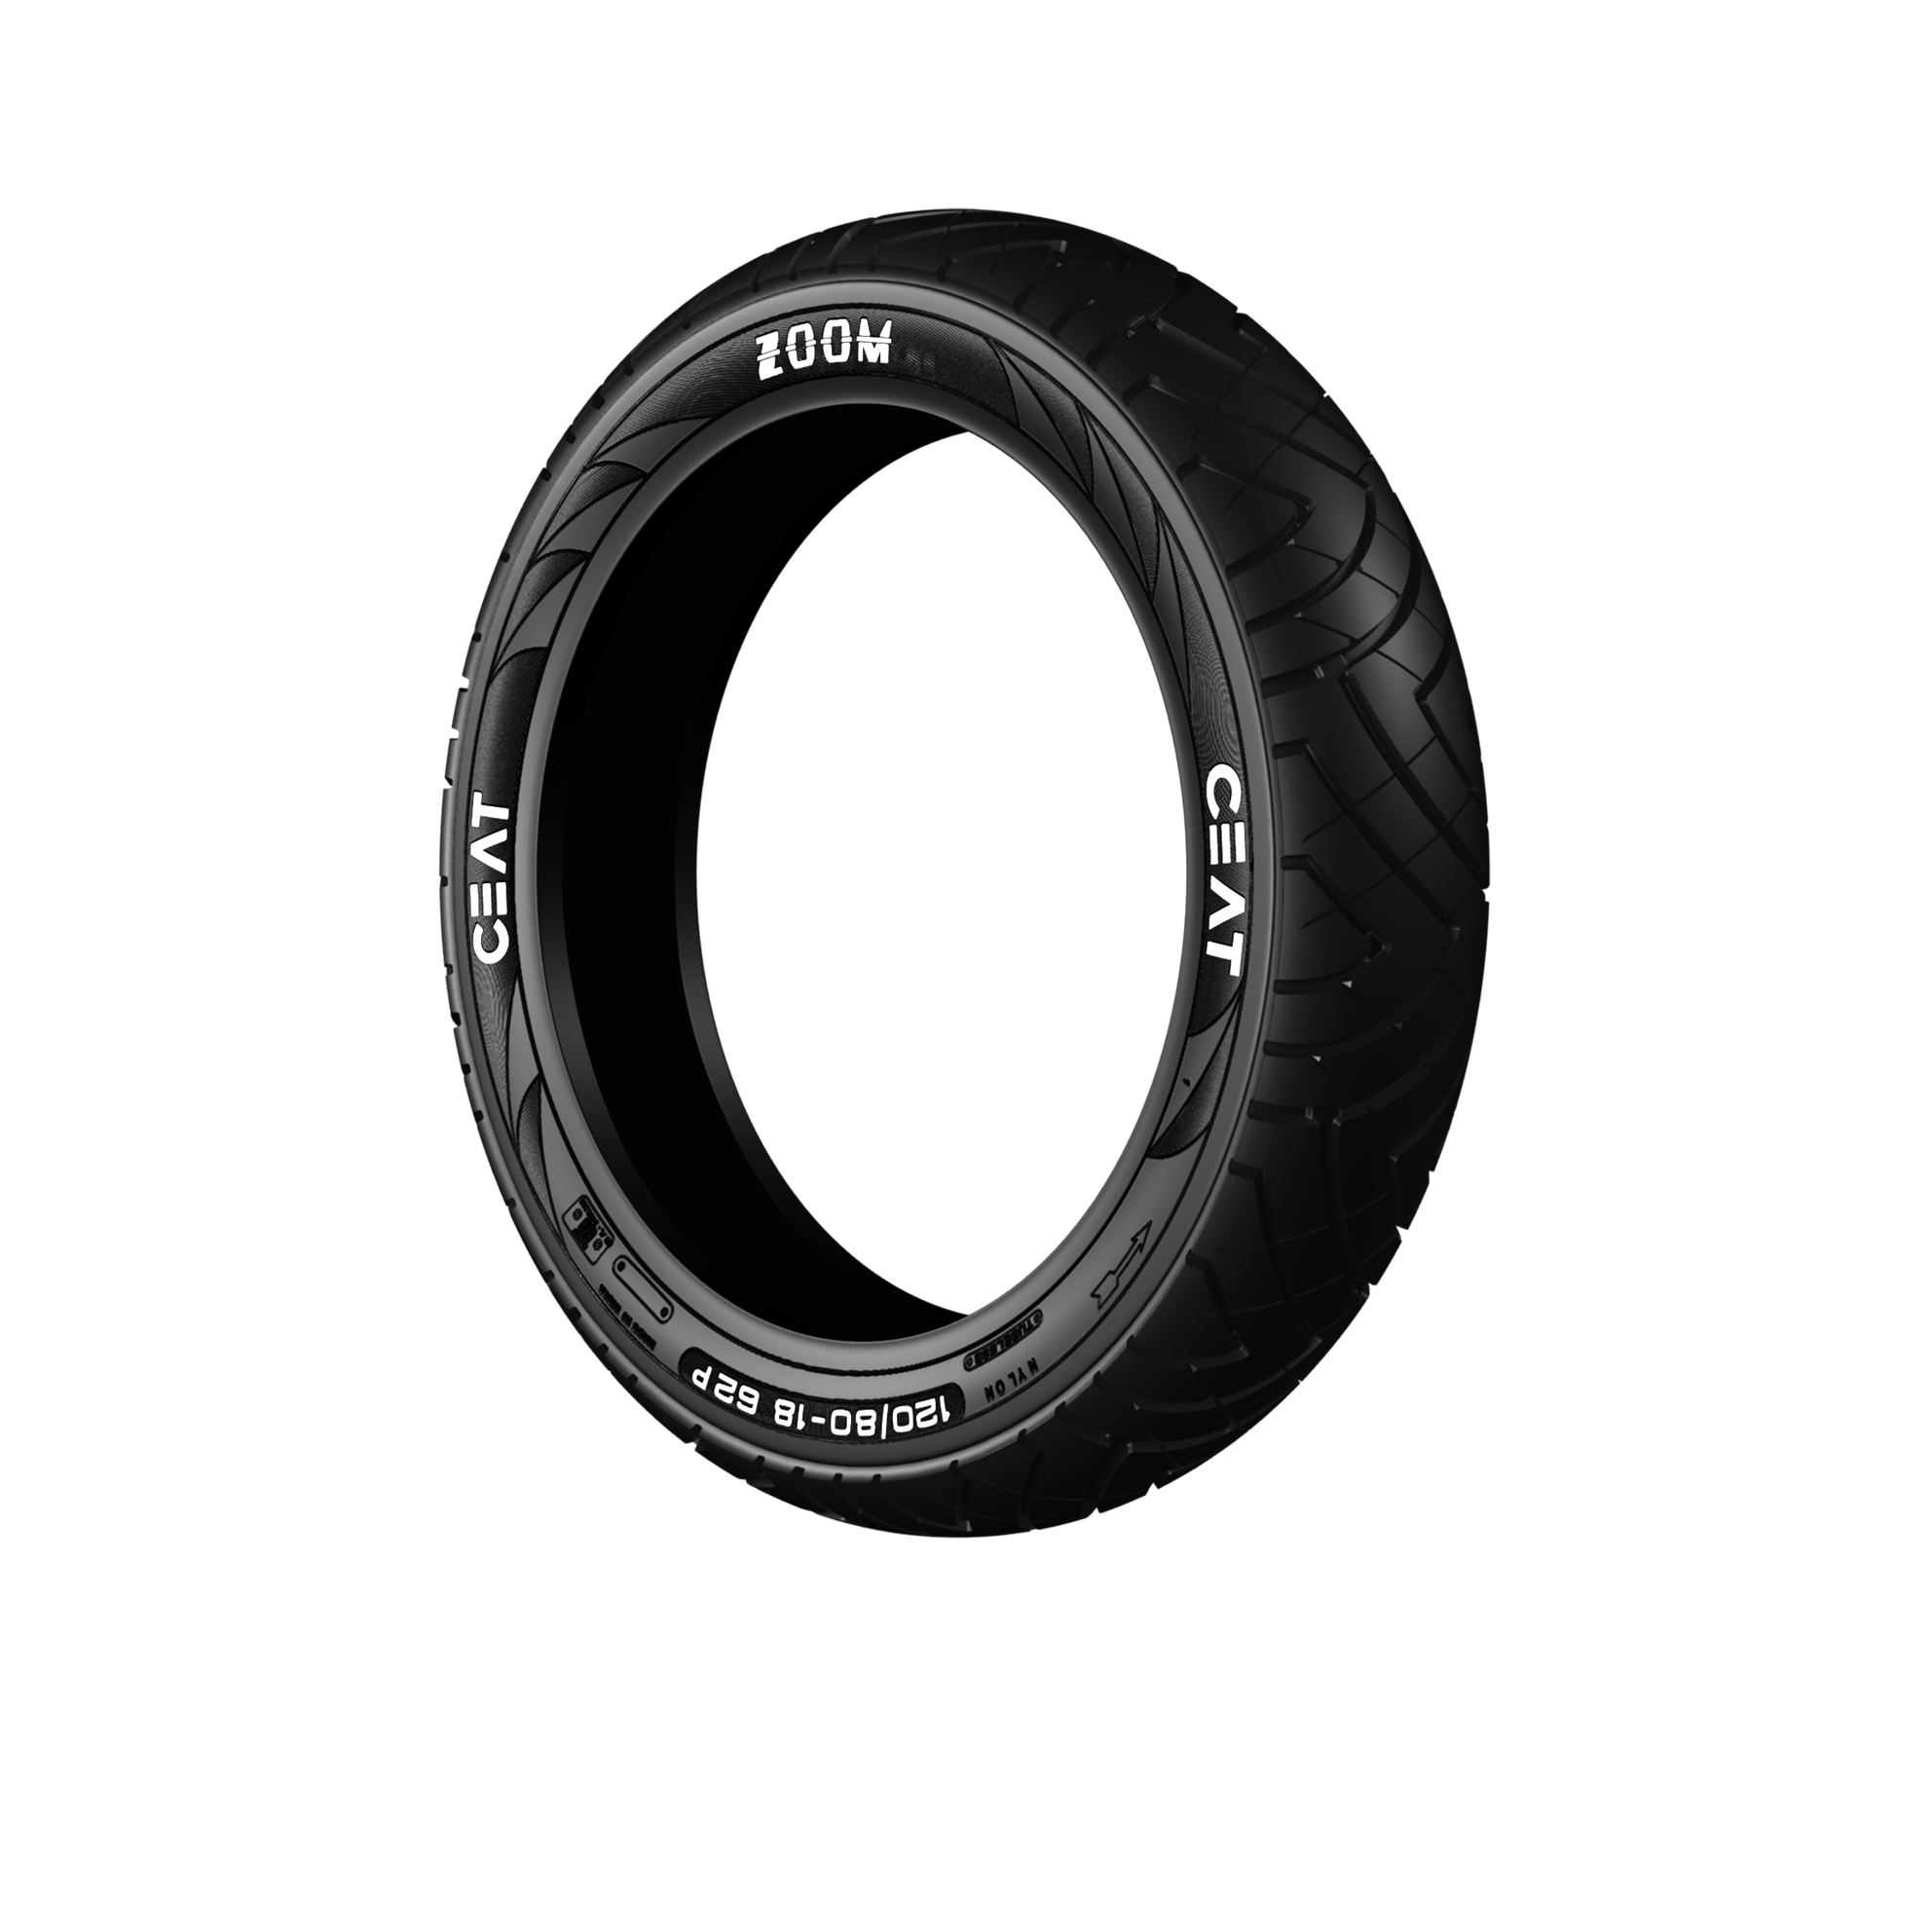 CEAT ZOOM 100/90 17 Tubeless 56 P Rear Two-Wheeler Tyre